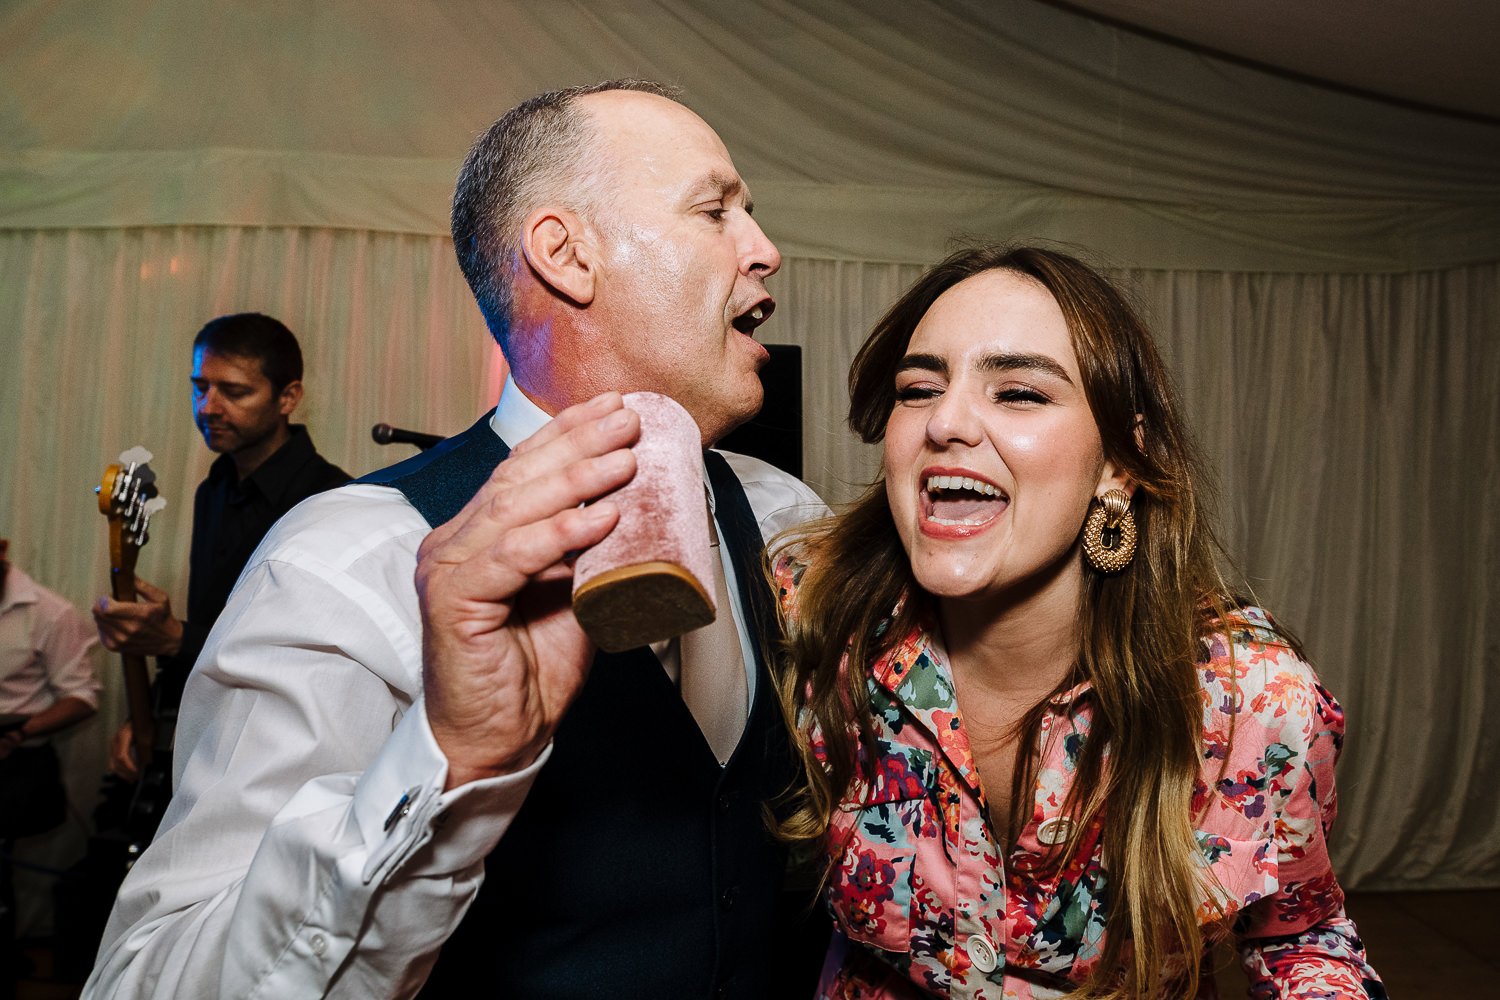 Father of bride dancing with a guest